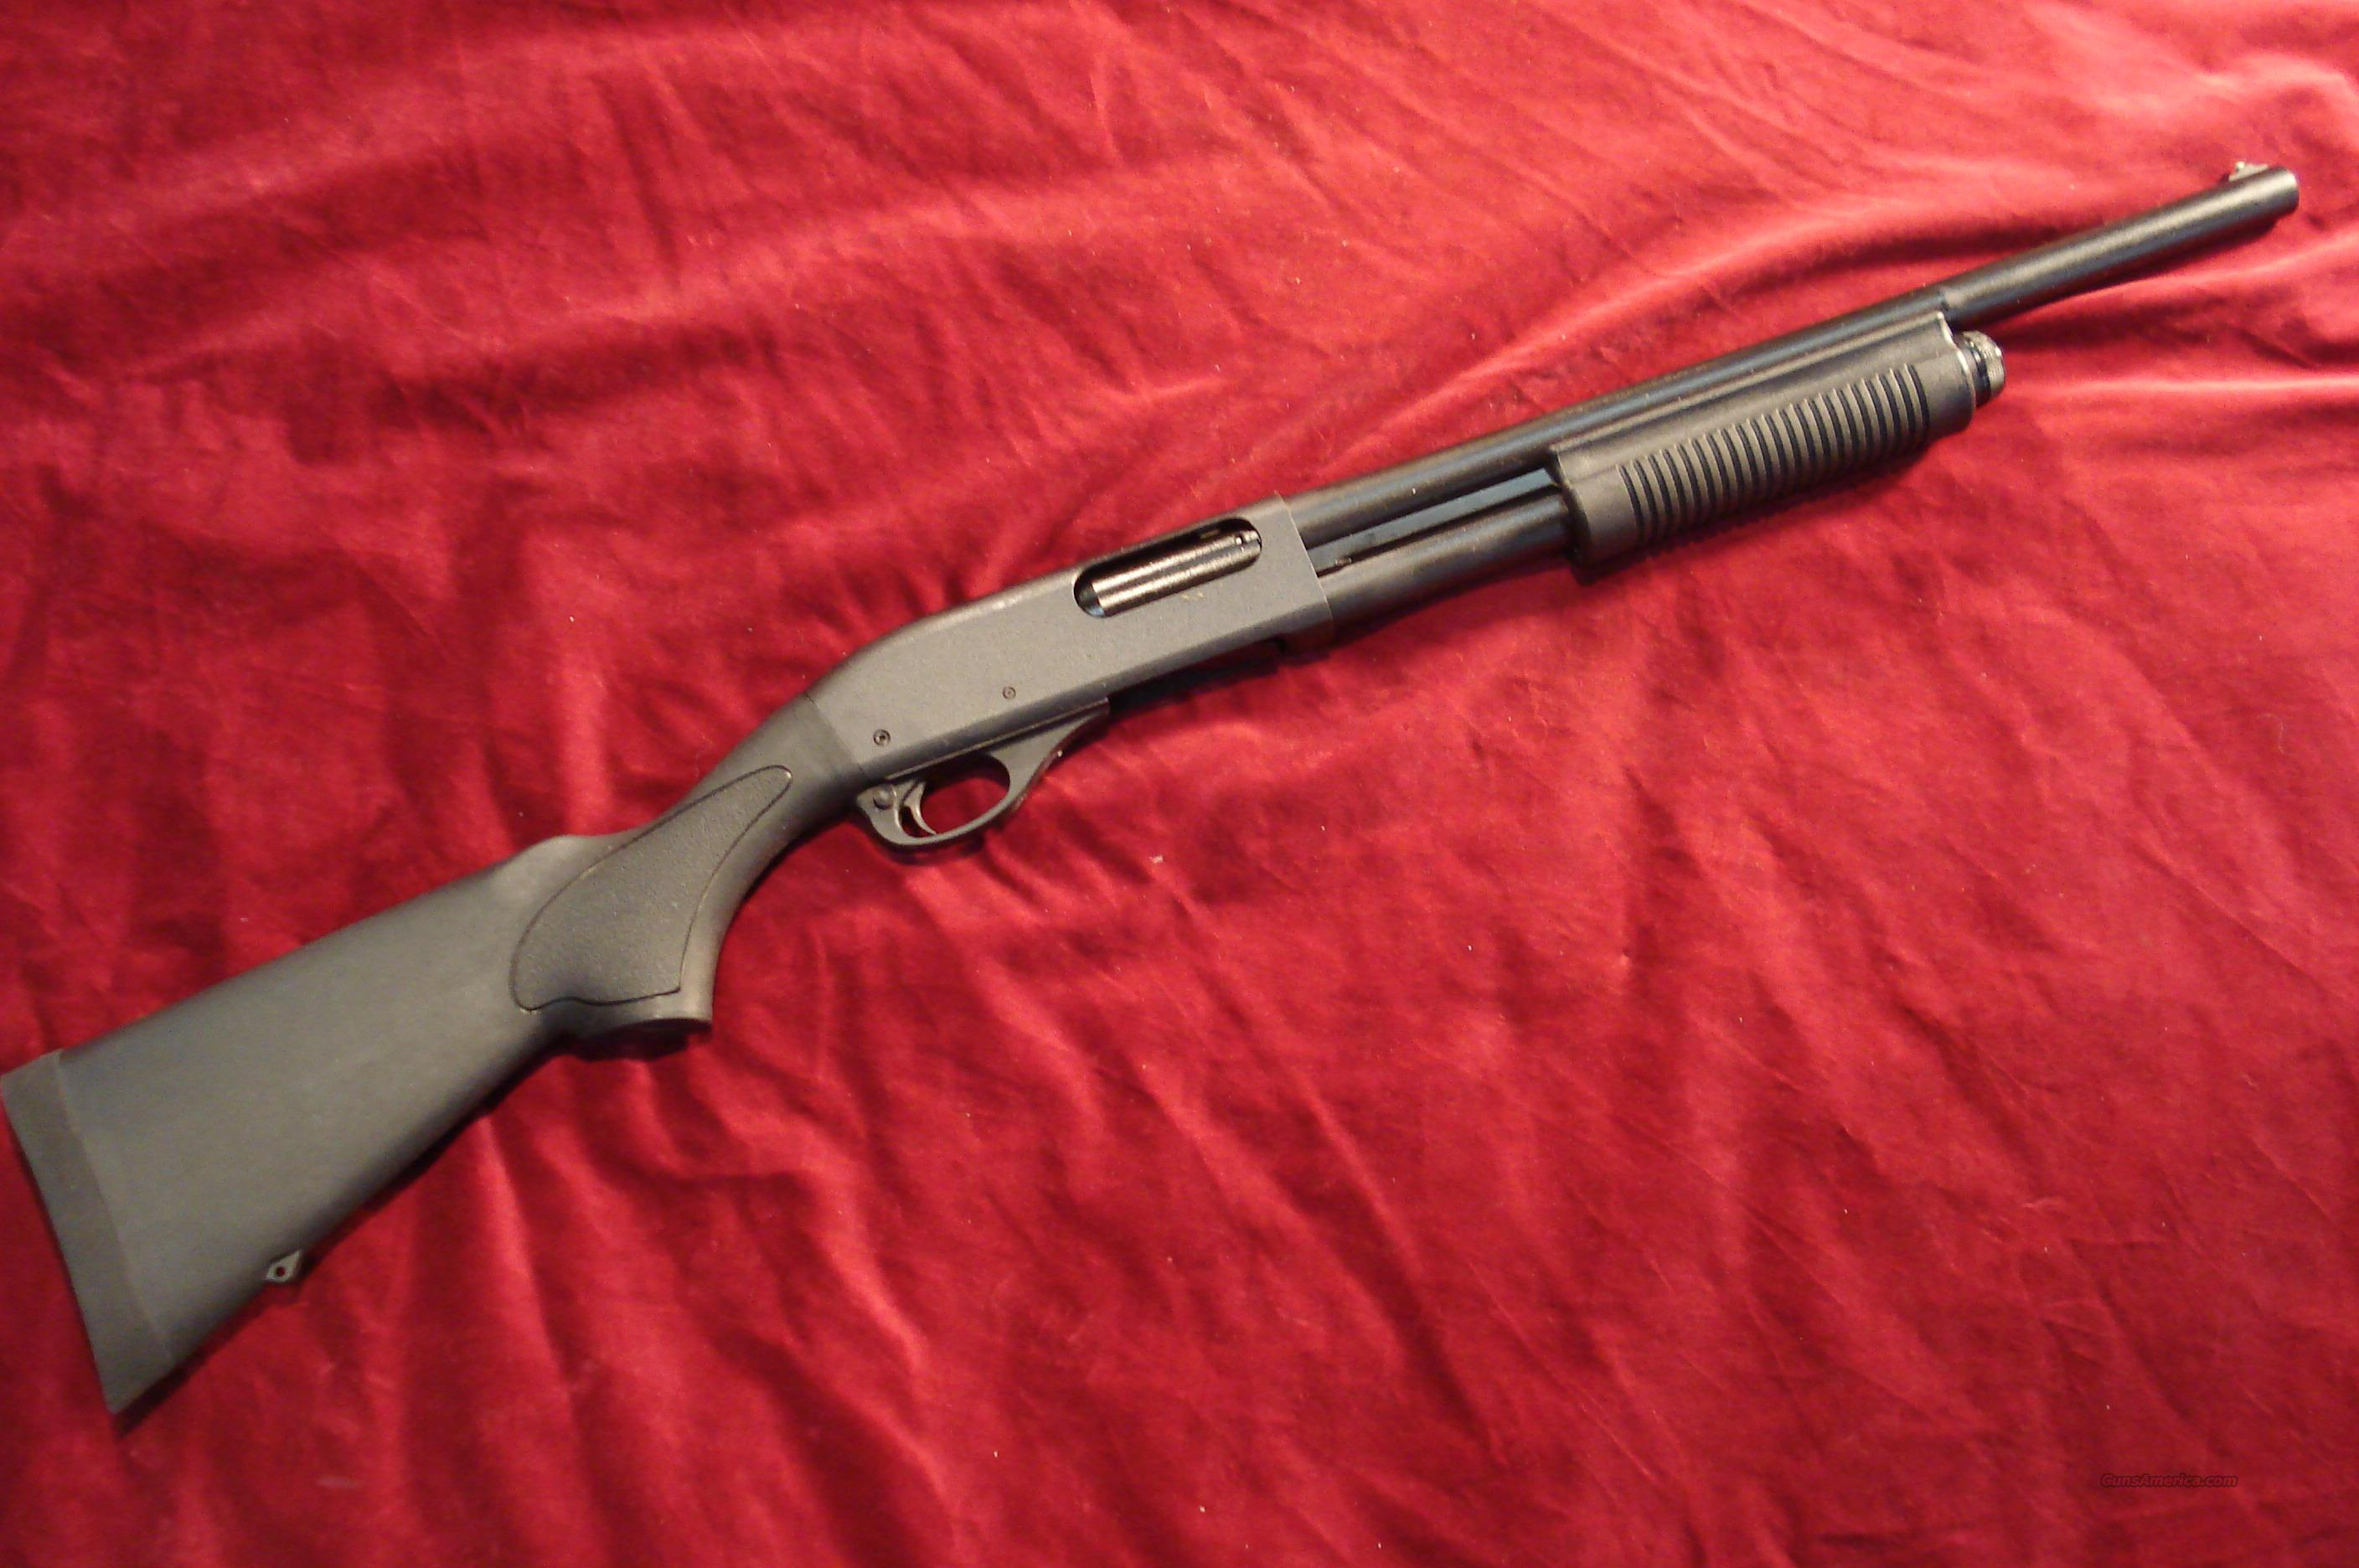 "NEW STYLE REMINGTON 870 HD (HOME DEFENSE)12G PUMP ACTION SHOTGUN WITH A 18"" BARREL, 3"" CHAMBER, CYLINDER BORE,  BEAD FRONT SIGHT, SYNTHETIC STOCK AND FOREARM, MATTE BLACK ON ALL METAL NEW  Guns > Shotguns > Remington Shotguns  > Pump > Tactical"